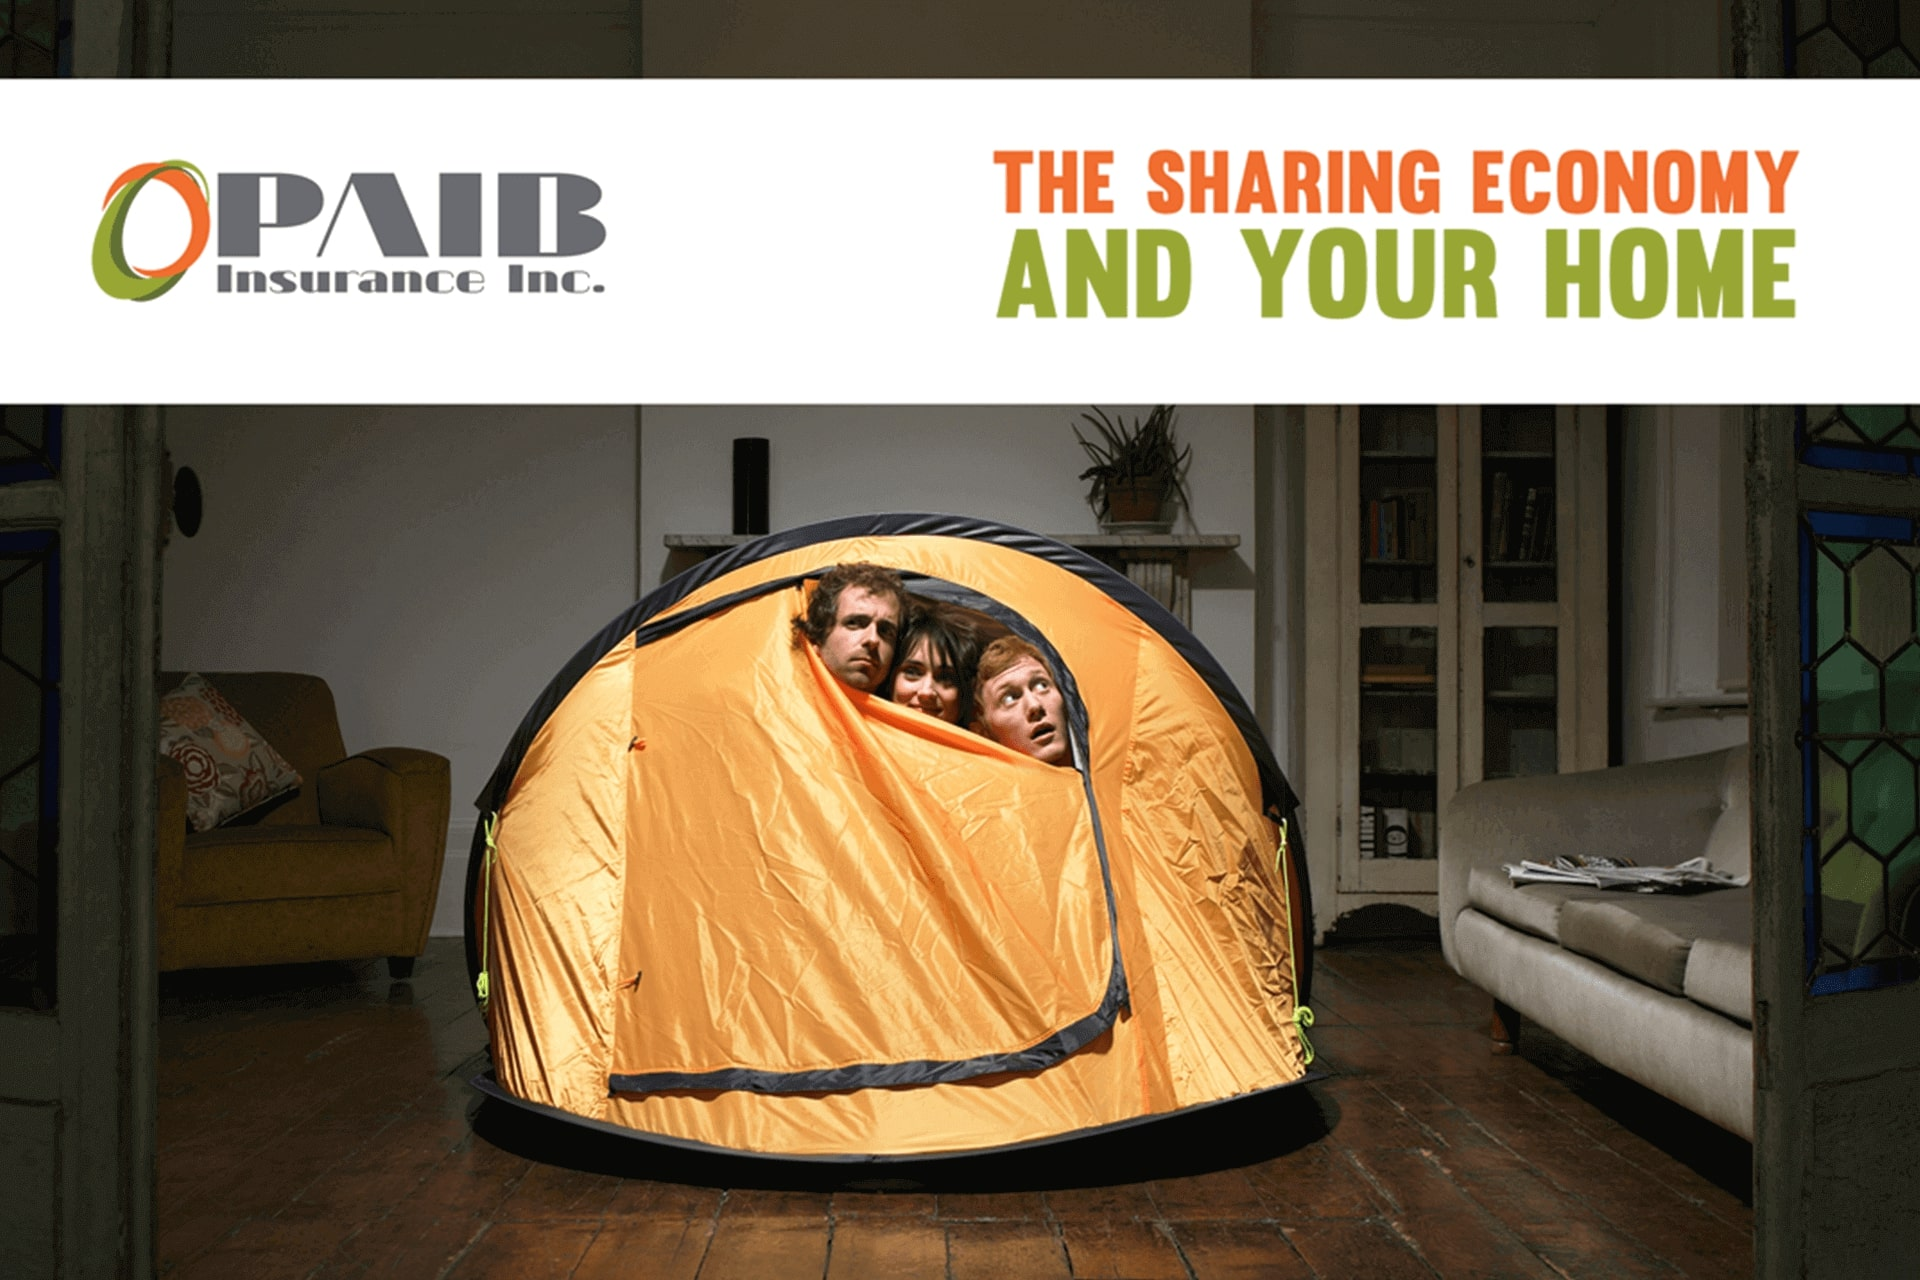 The Sharing Economy and Your Home - PAIB Insurance